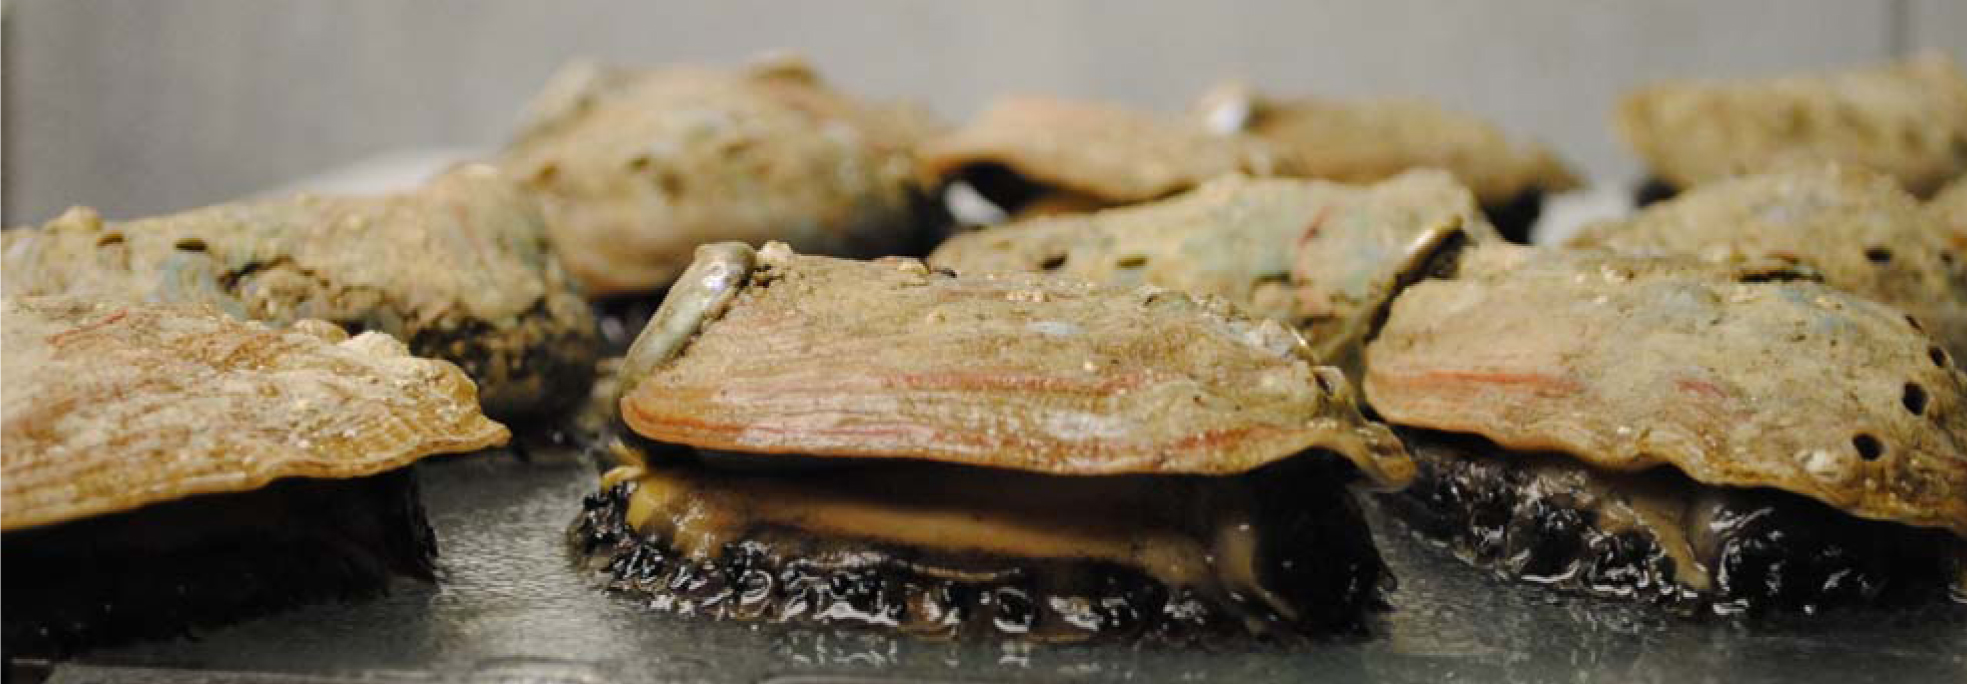 Abalone: Local, delectable, and not as daunting as I previously imagined